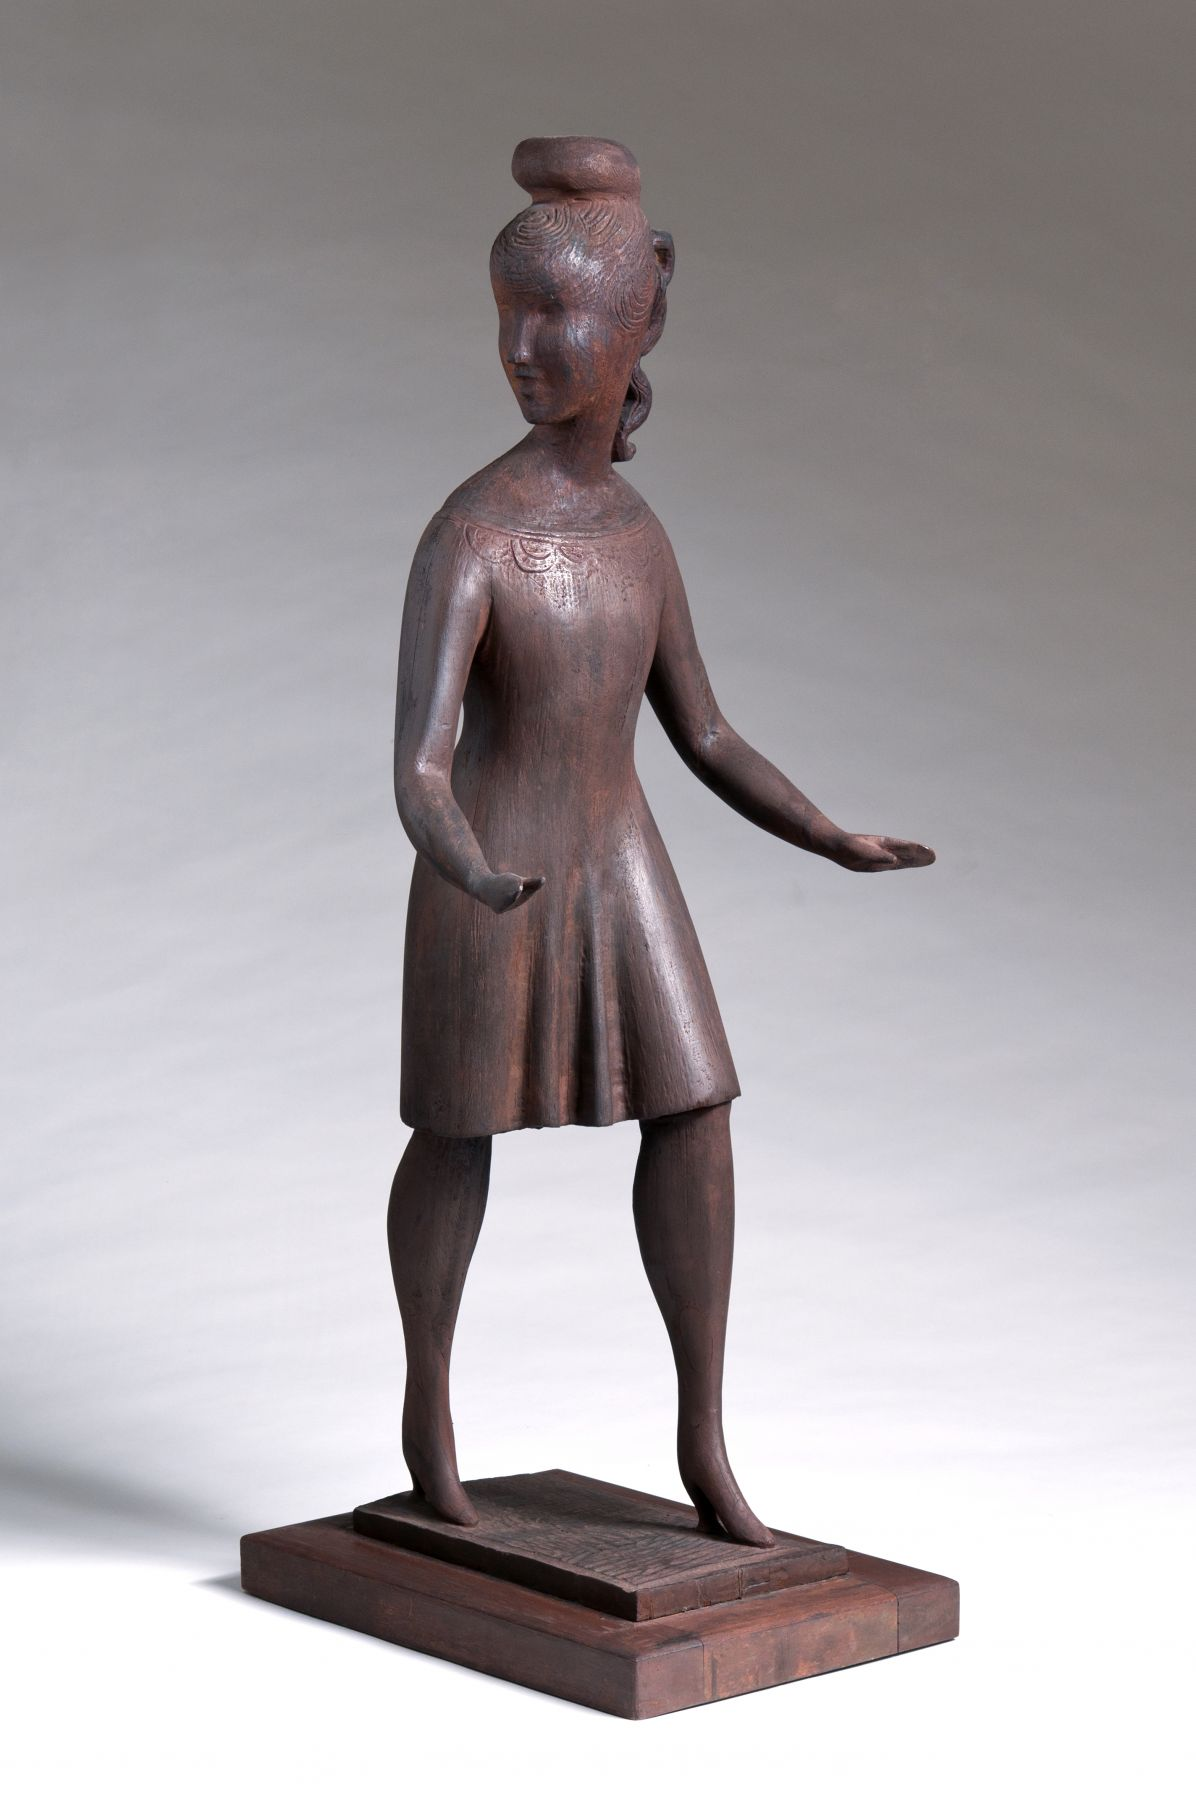 Elie Nadelman, Standing Girl, c. 1918-1920, carved cherry wood, 32 1/2 h x 12 3/8 w x 13 5/8 d inches